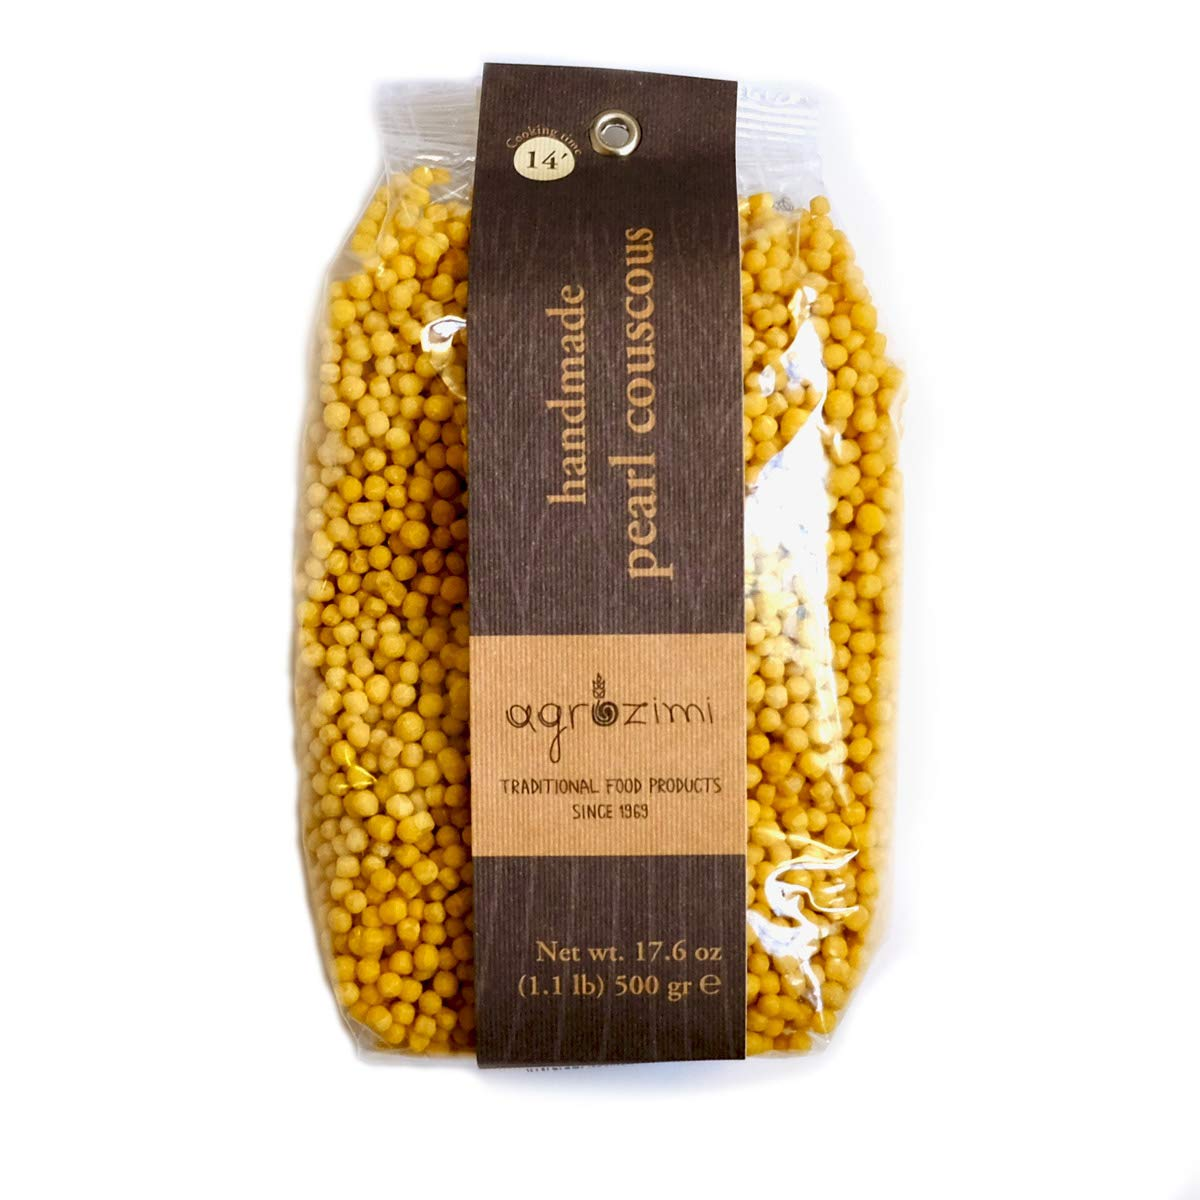 Agrozimi Traditional Greek Handmade Pearl Couscous (17.6 Ounces, 500 Grams) by Agrozimi